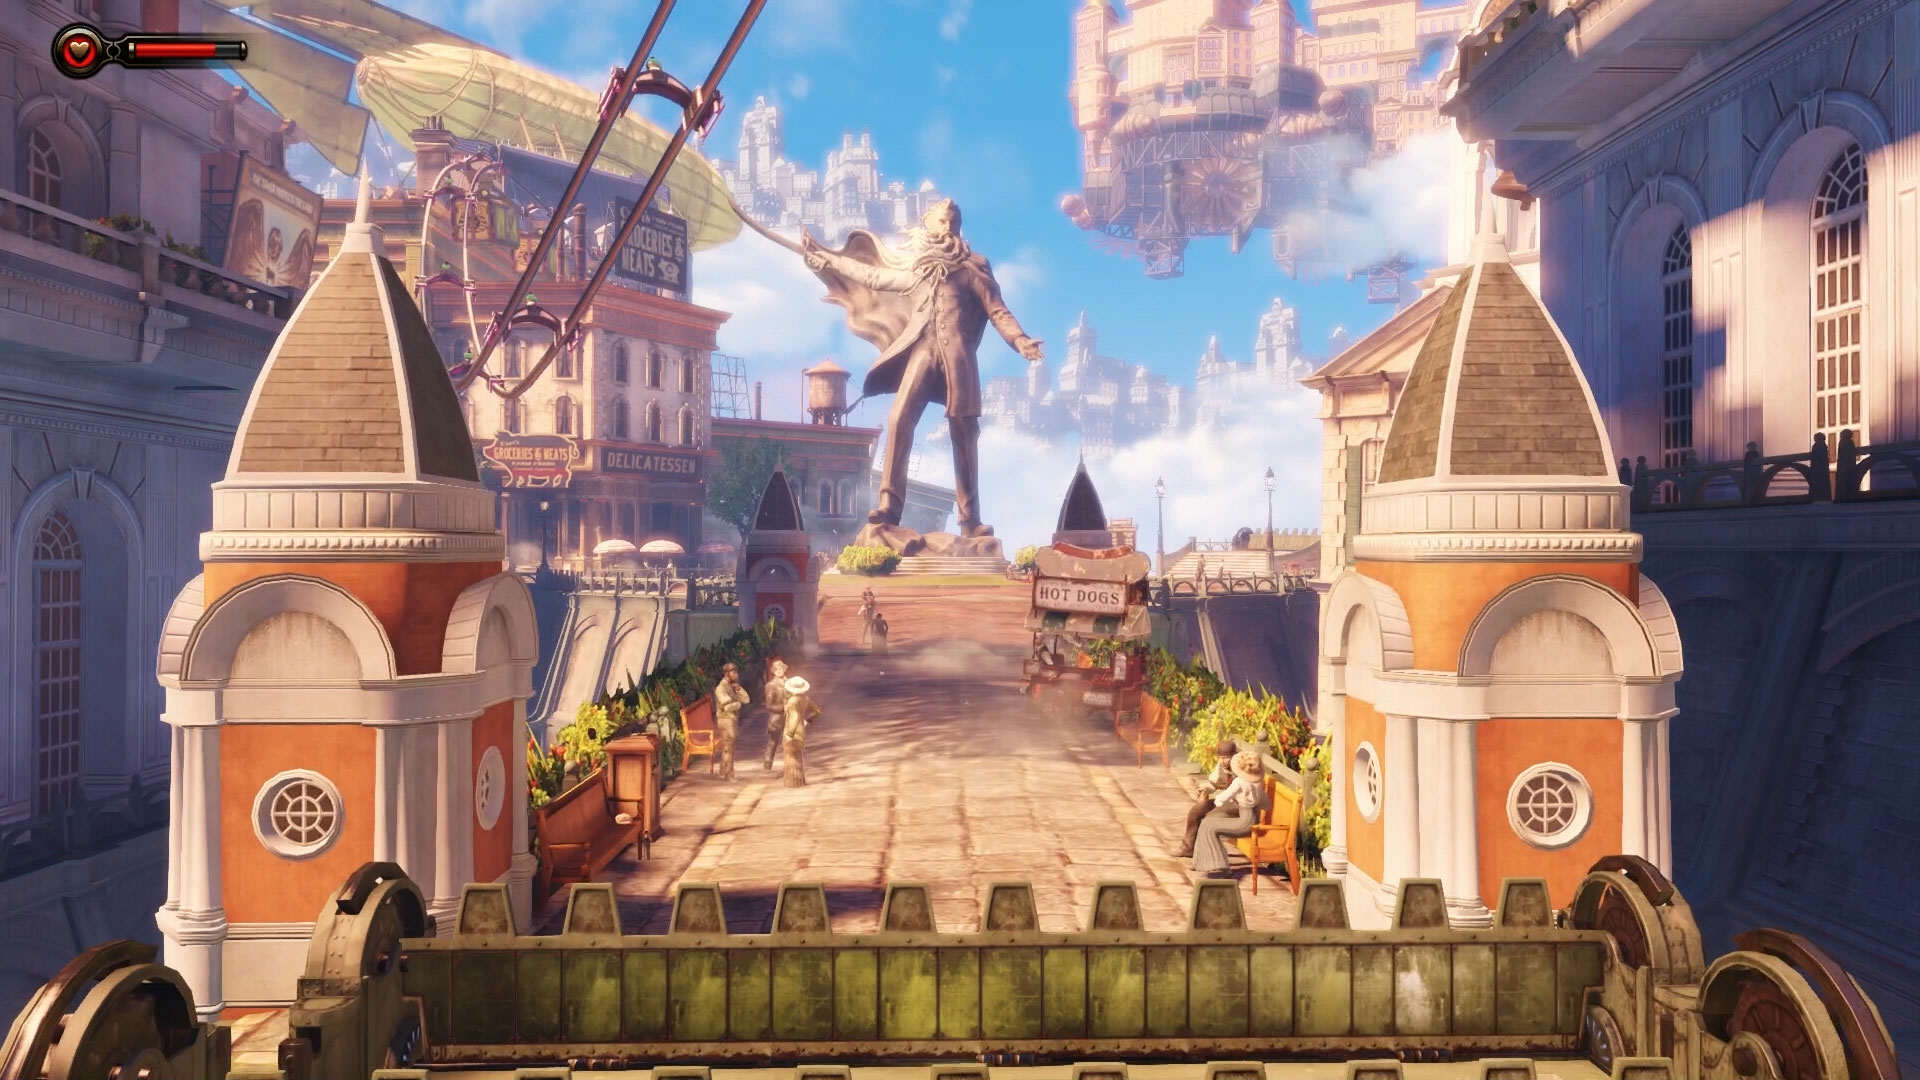 BioShock The Collection Officially Confirmed By 2K 1467231396 bioshock the collection 1